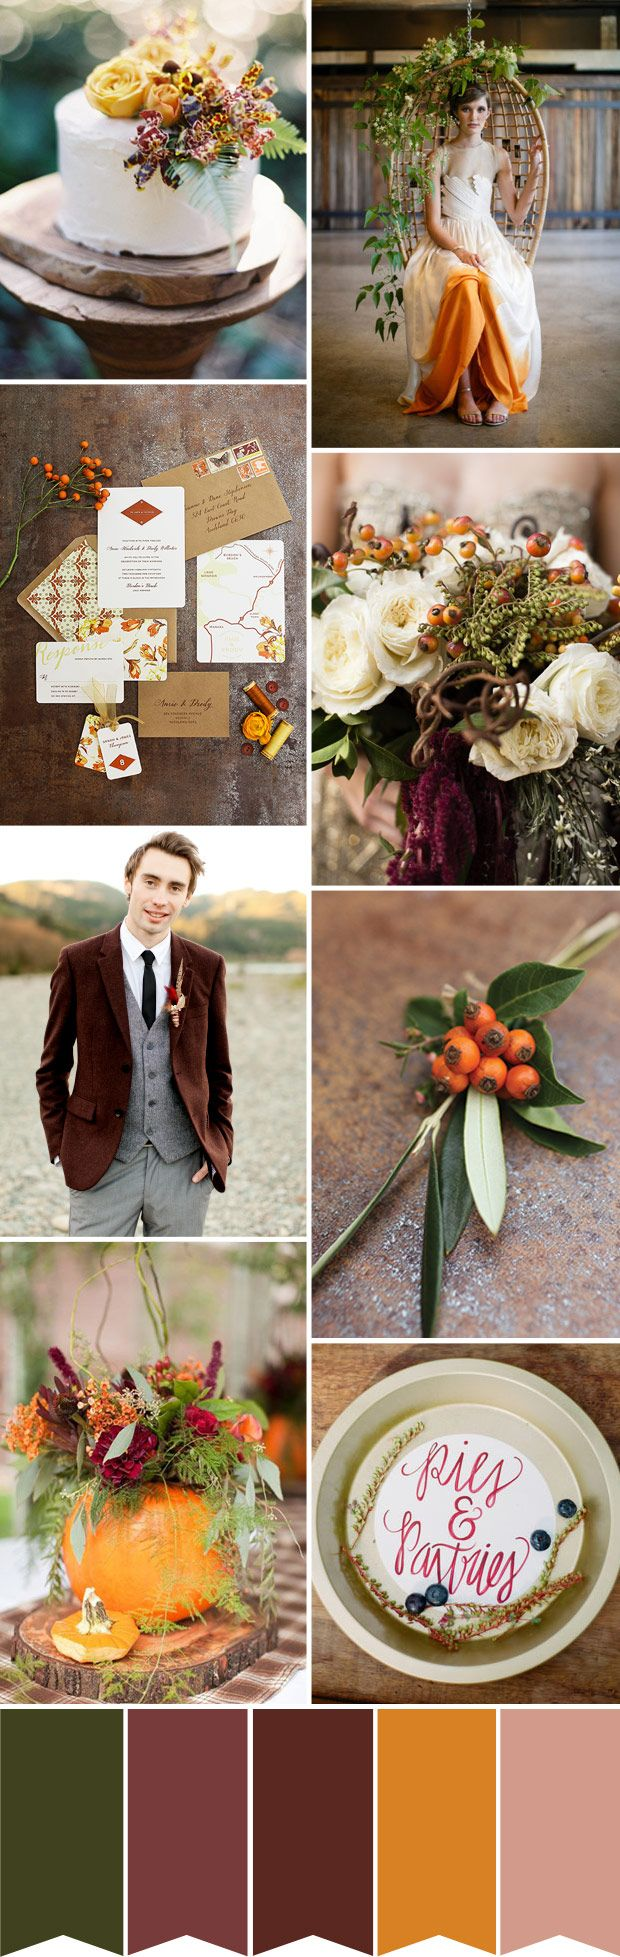 Autumnal Warmth - An Autumn Wedding Colour Palette #autumncolours